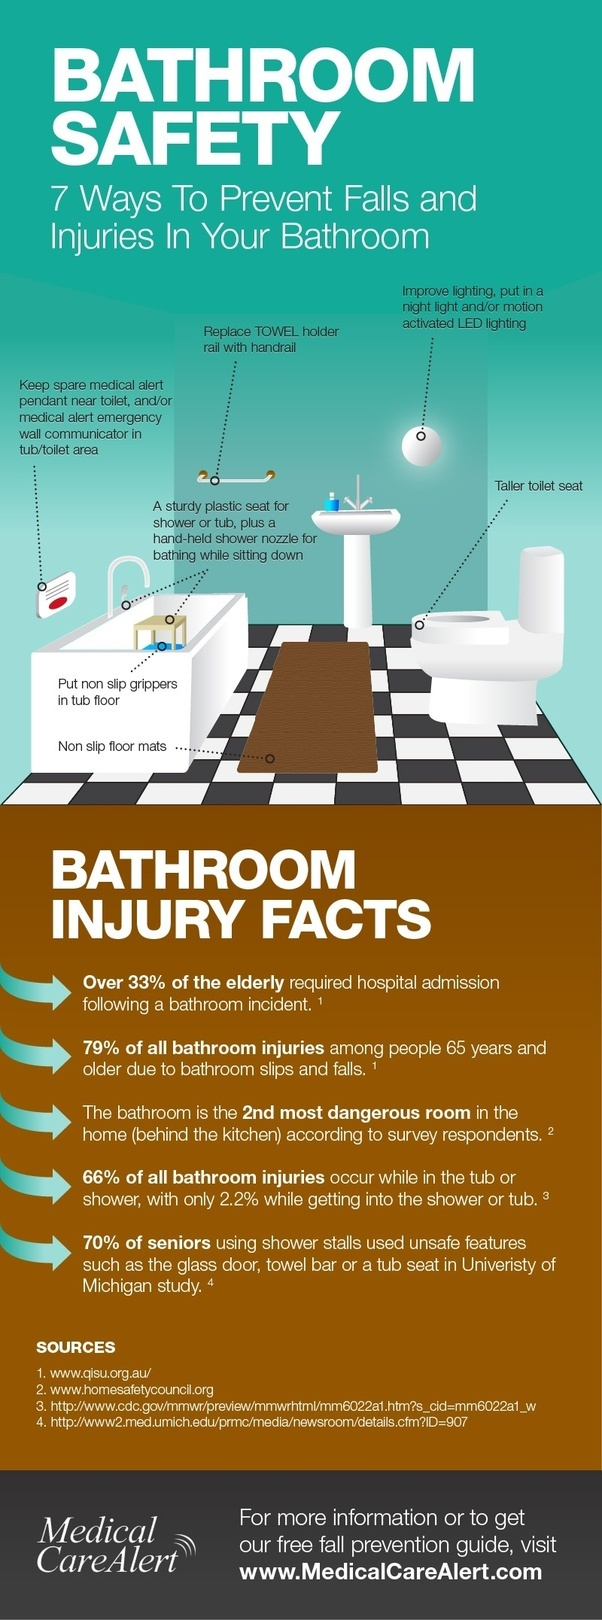 How would you insure your bathroom safety if you have seniors at ...